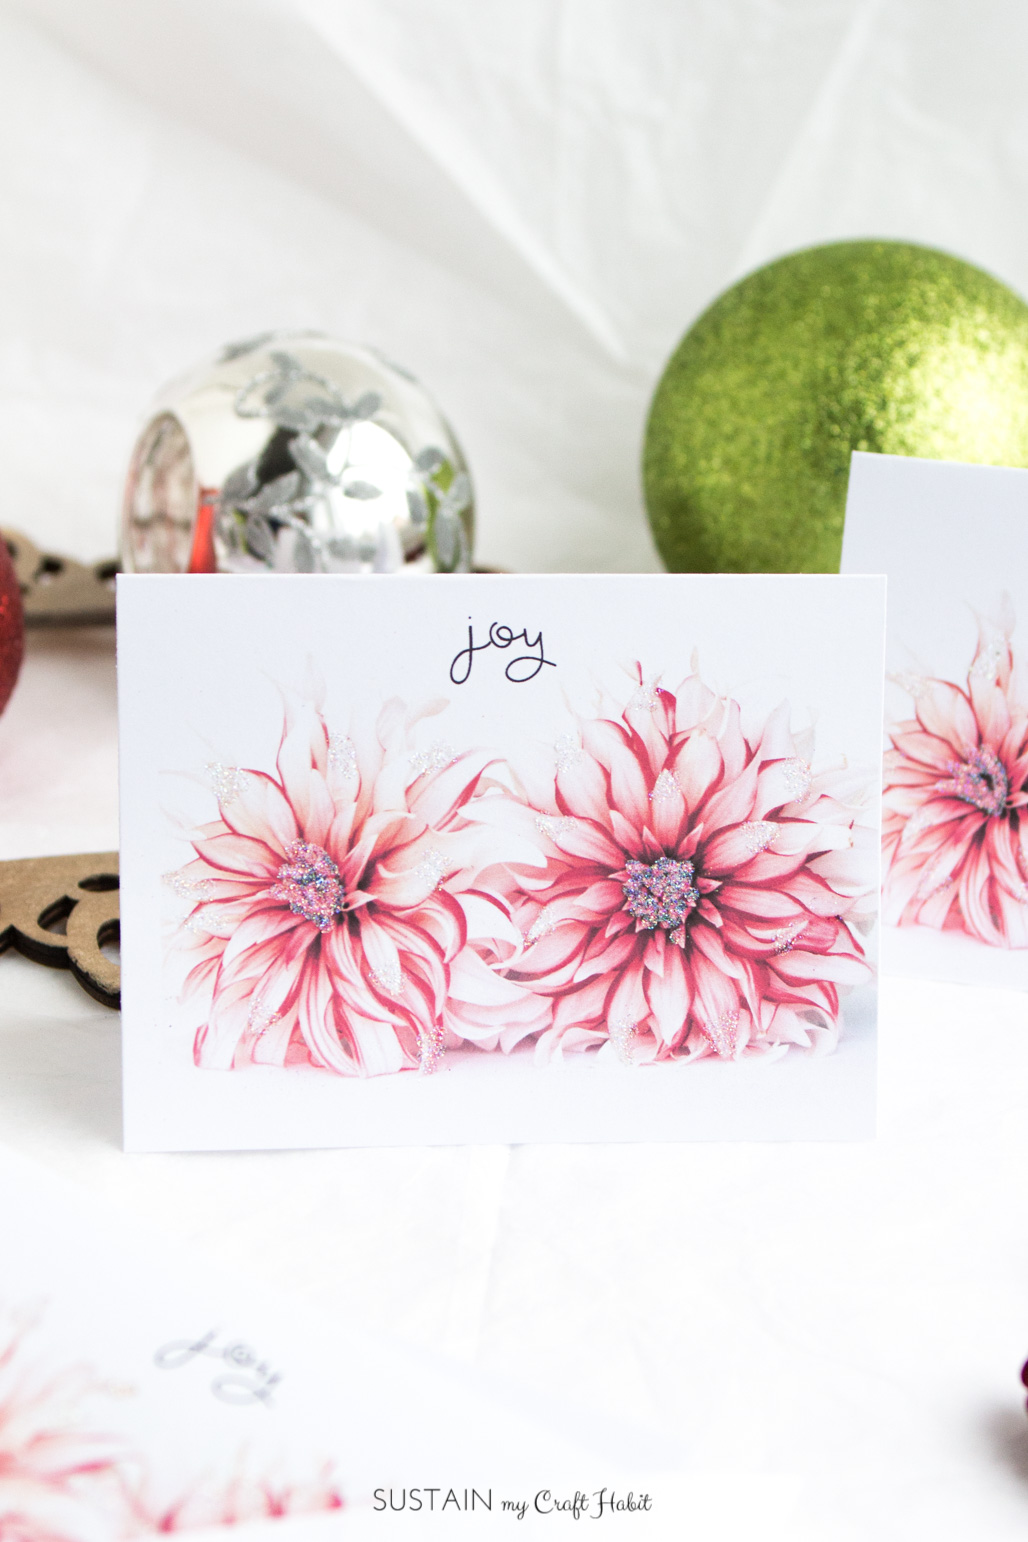 crafts cards ideas free printable diy cards floral sustain 1748